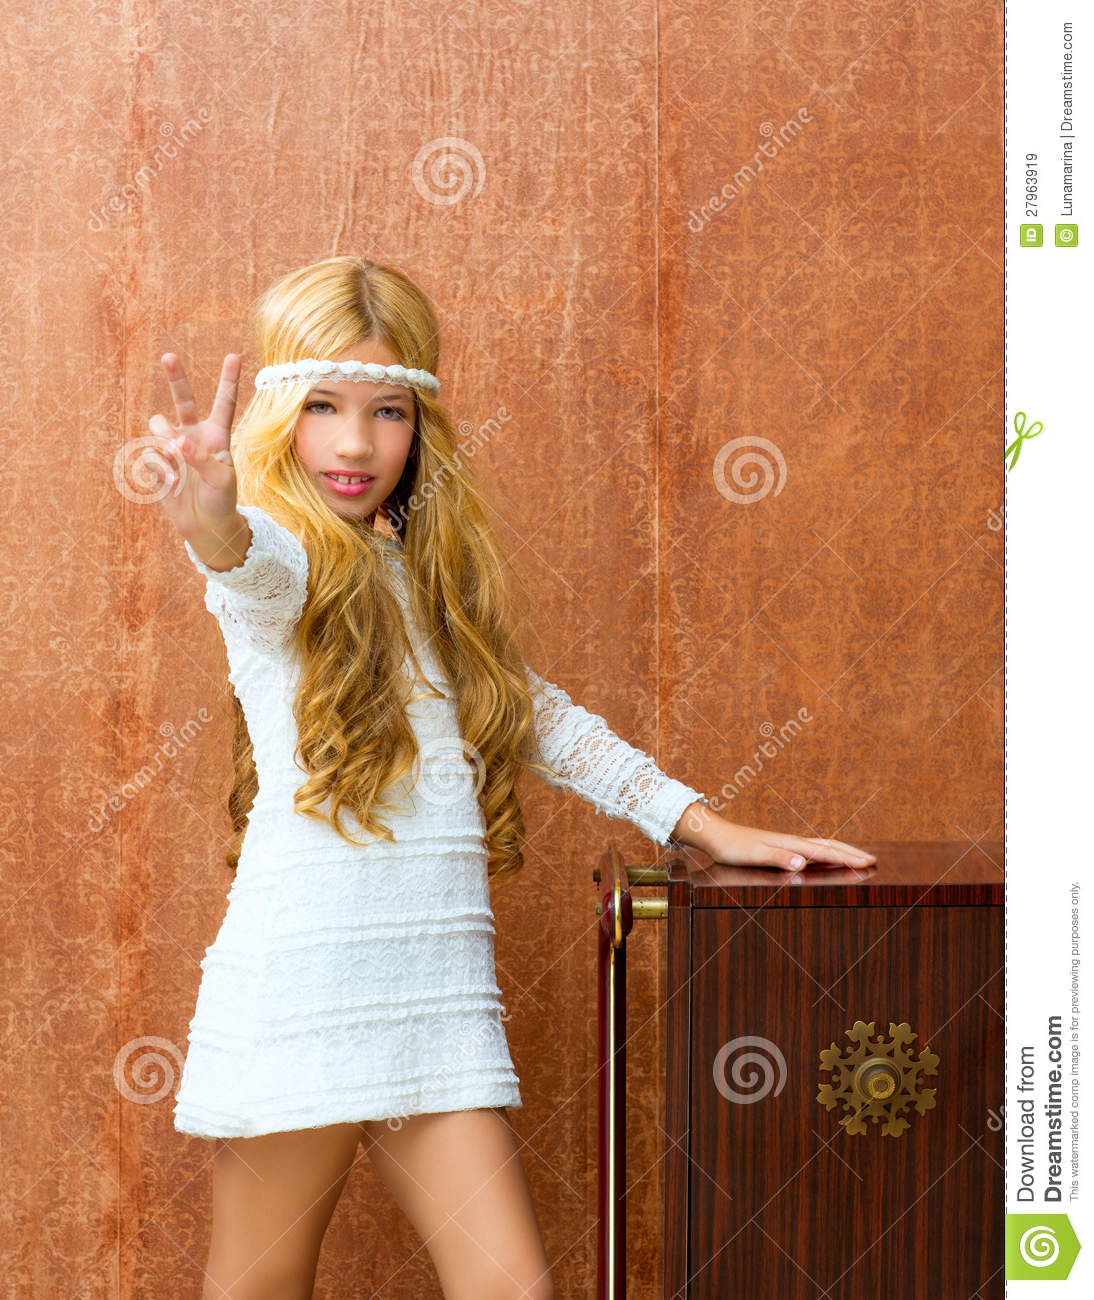 Blond Children Girl Retro 70s Royalty Free Stock Images